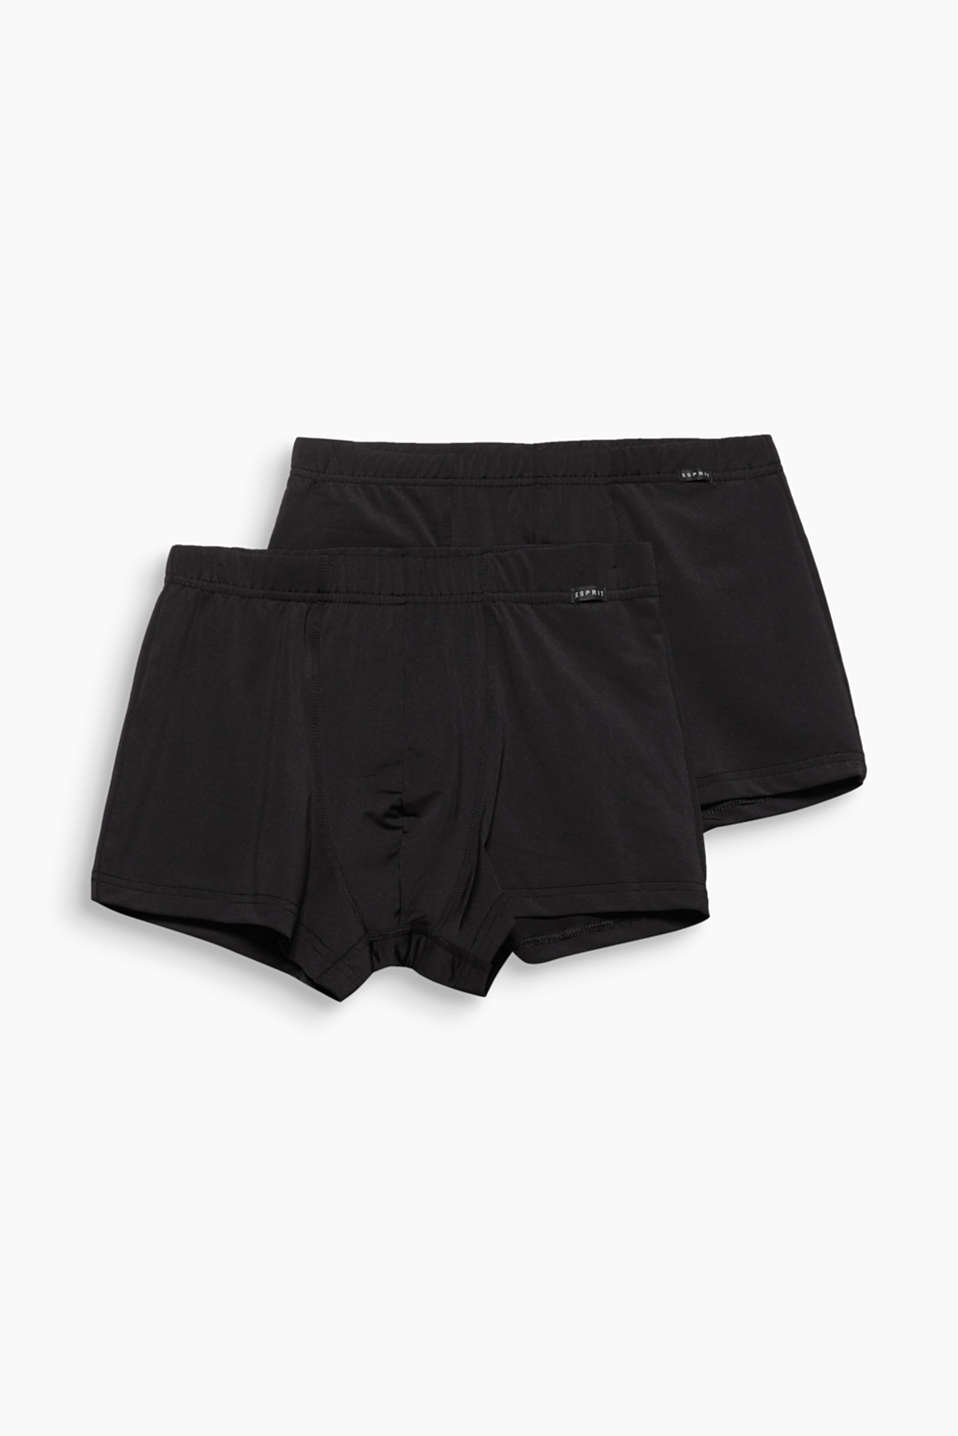 Esprit - Lot de 2 boxers stretch en microfibre